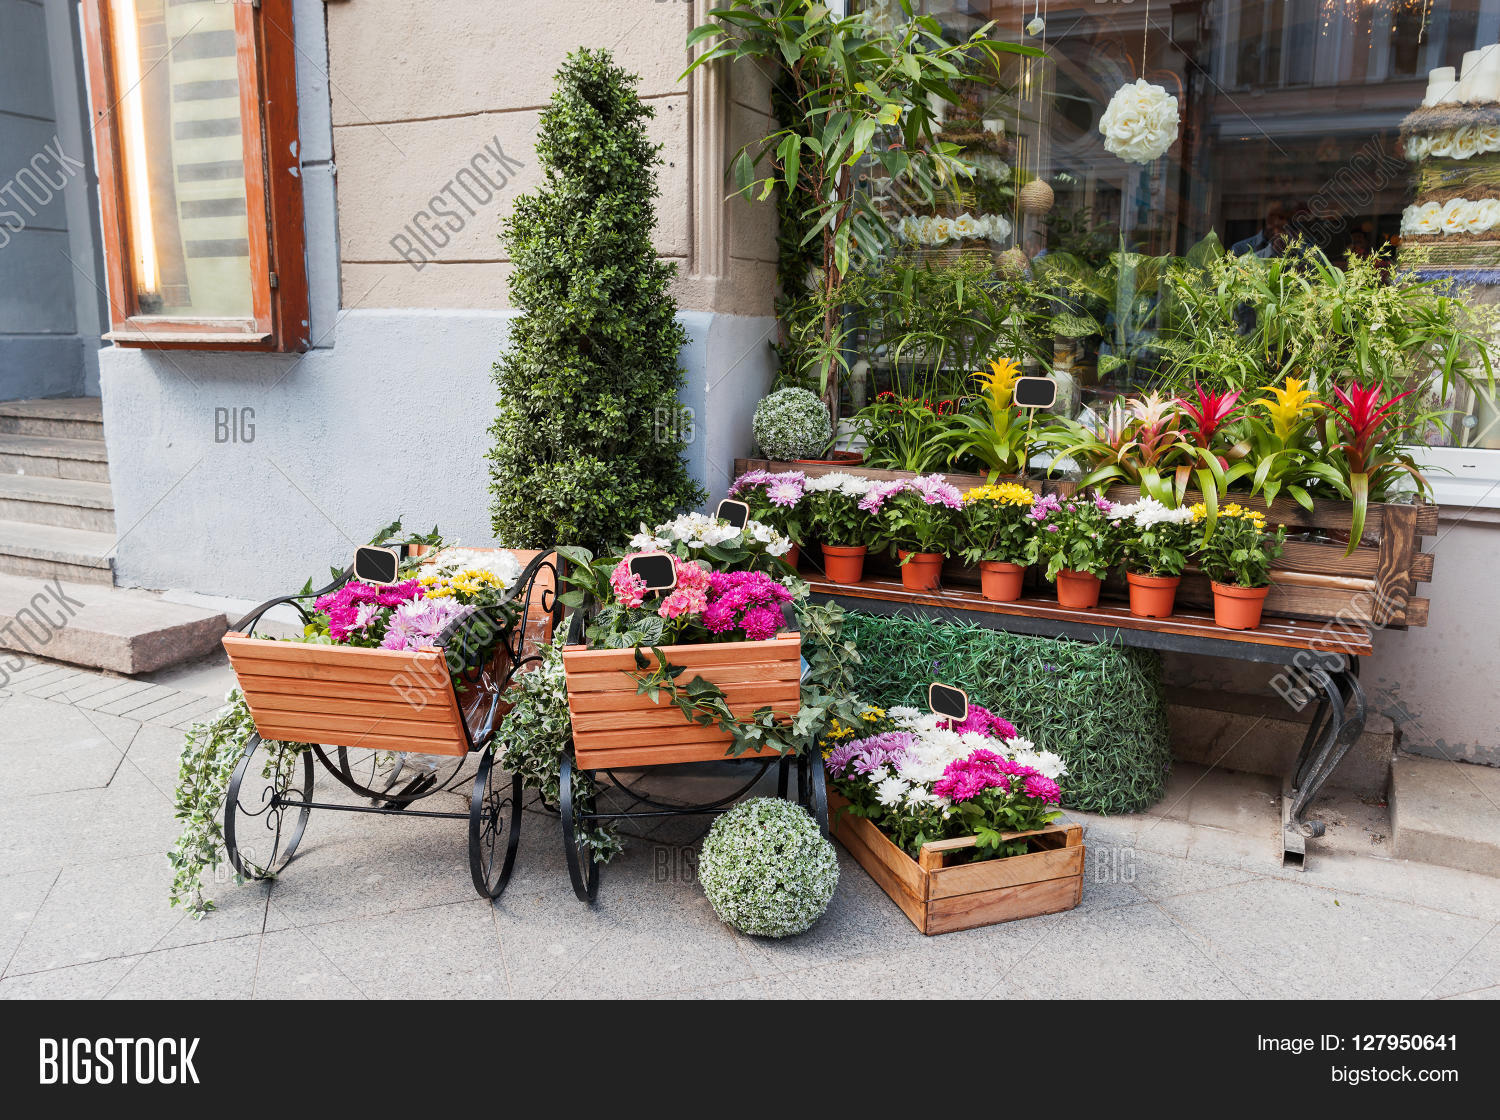 Potted Flowers On Image Photo Free Trial Bigstock